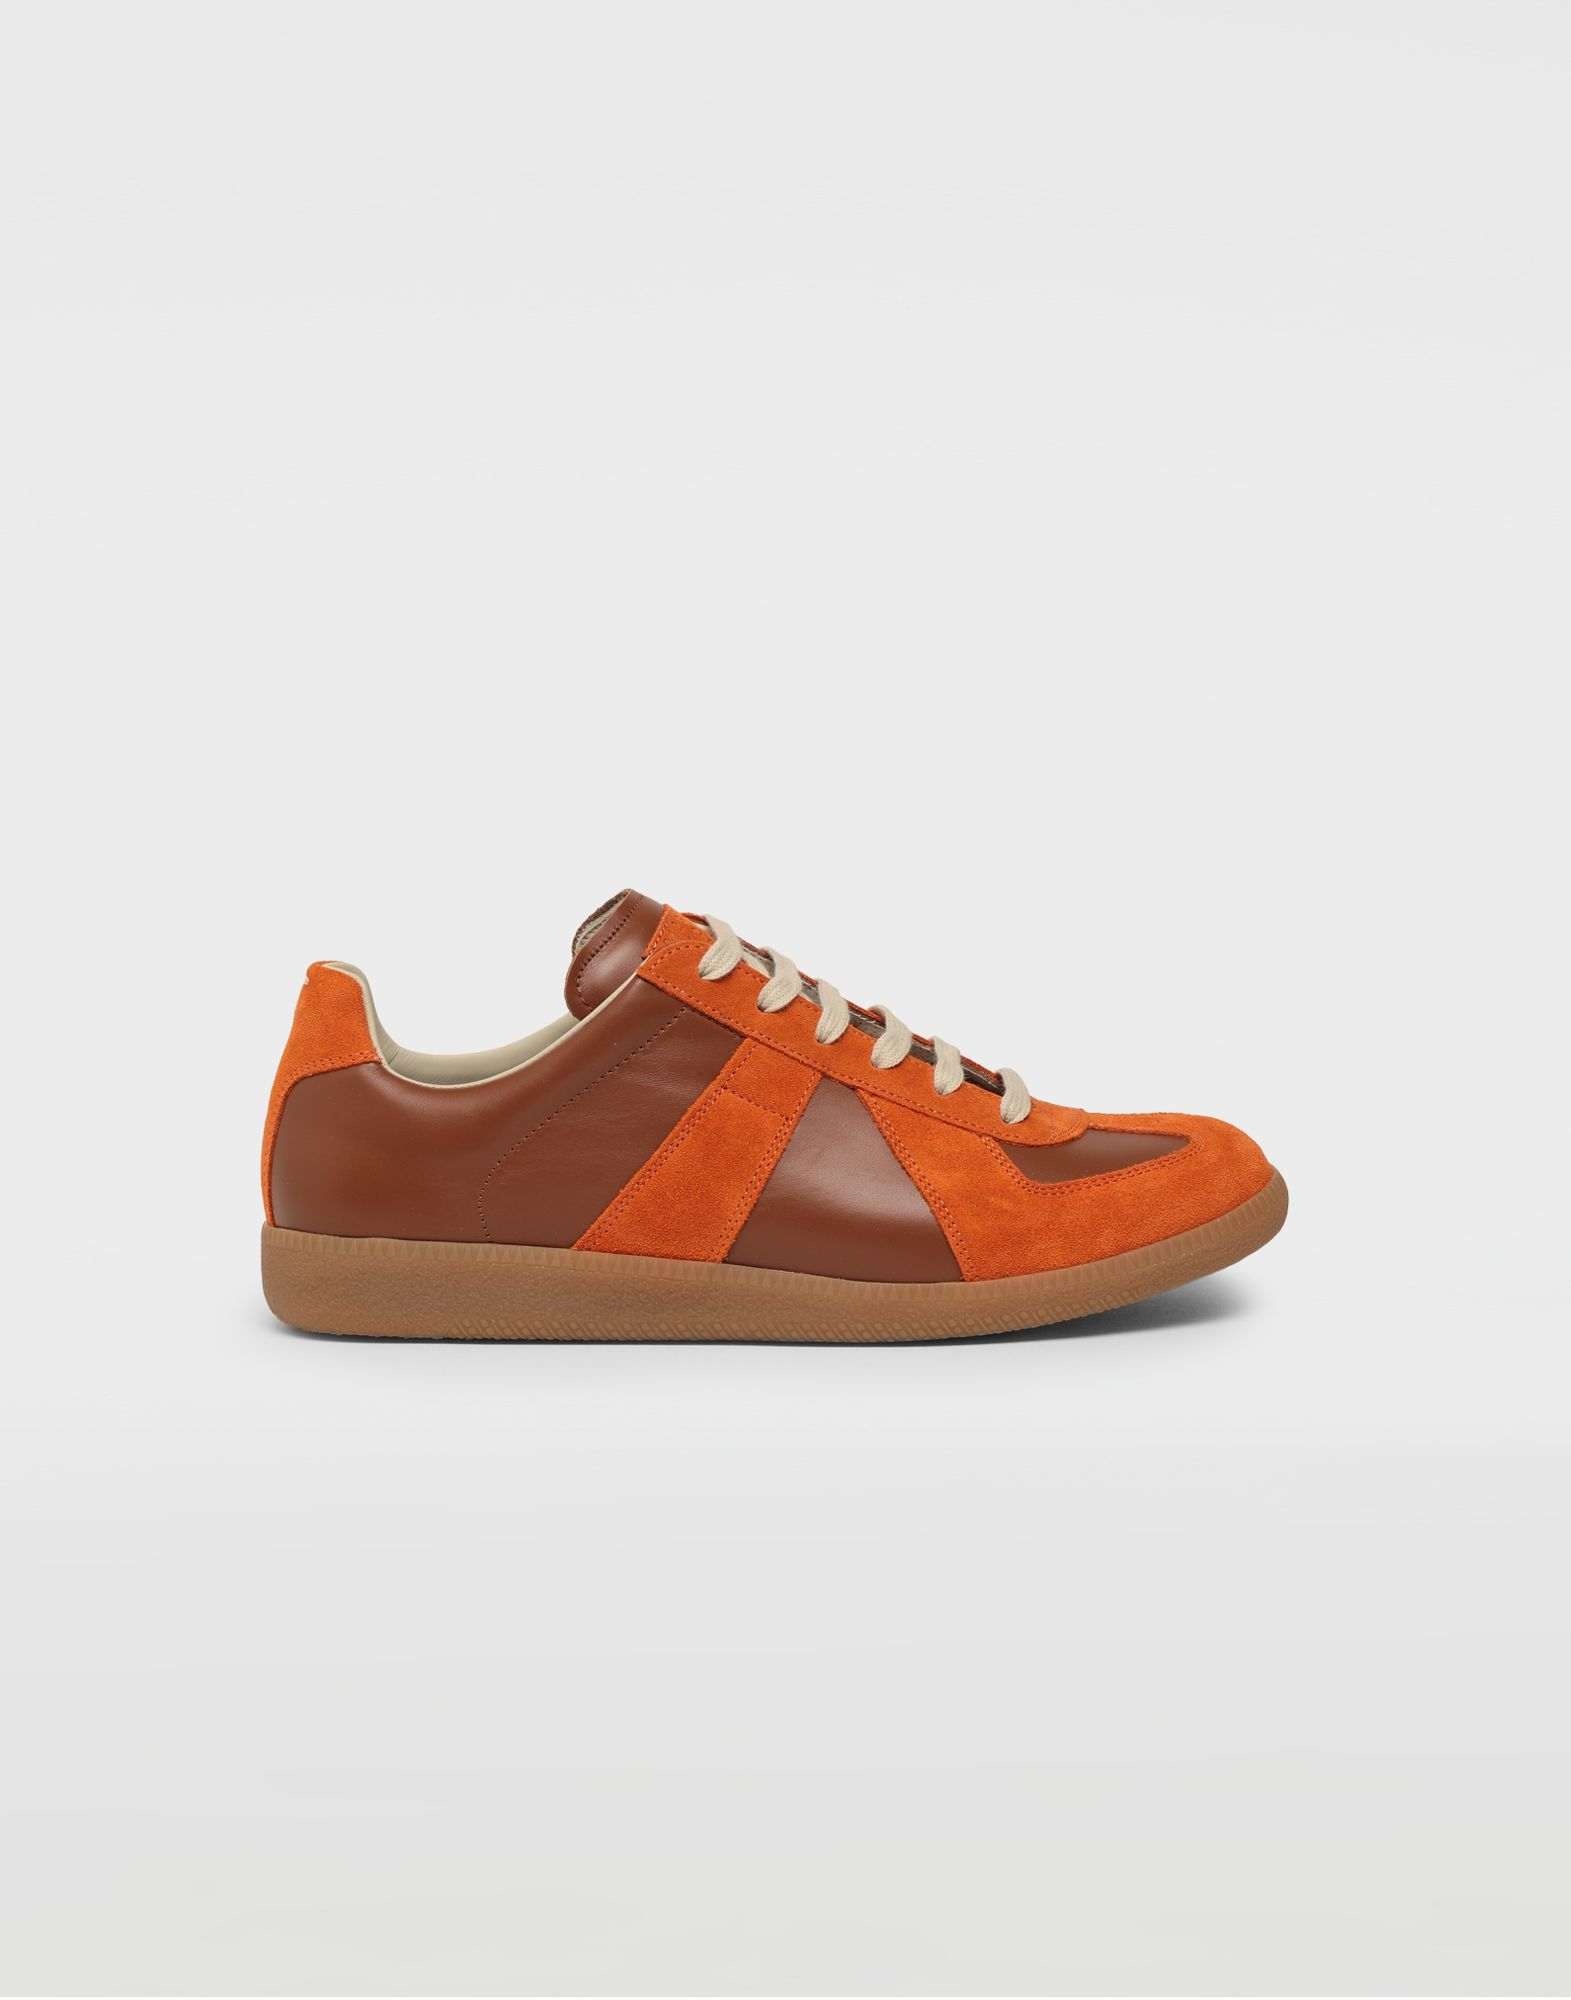 MAISON MARGIELA Replica low top calfskin and suede sneakers Sneakers Man f